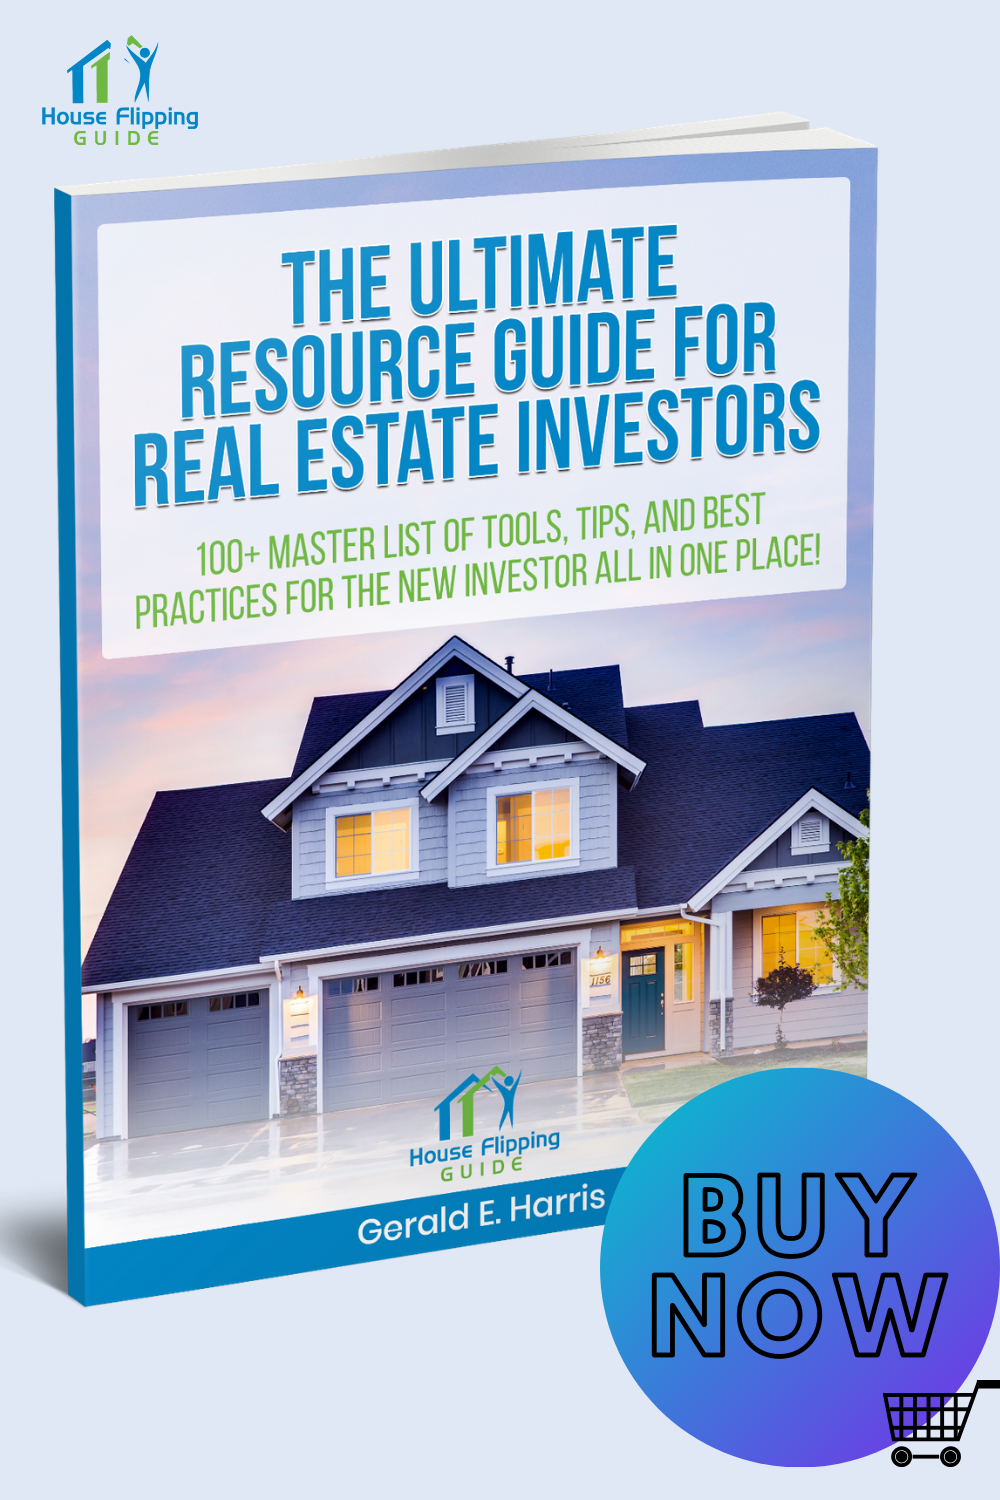 The Ultimate Resource Guide for Real Estate Investors